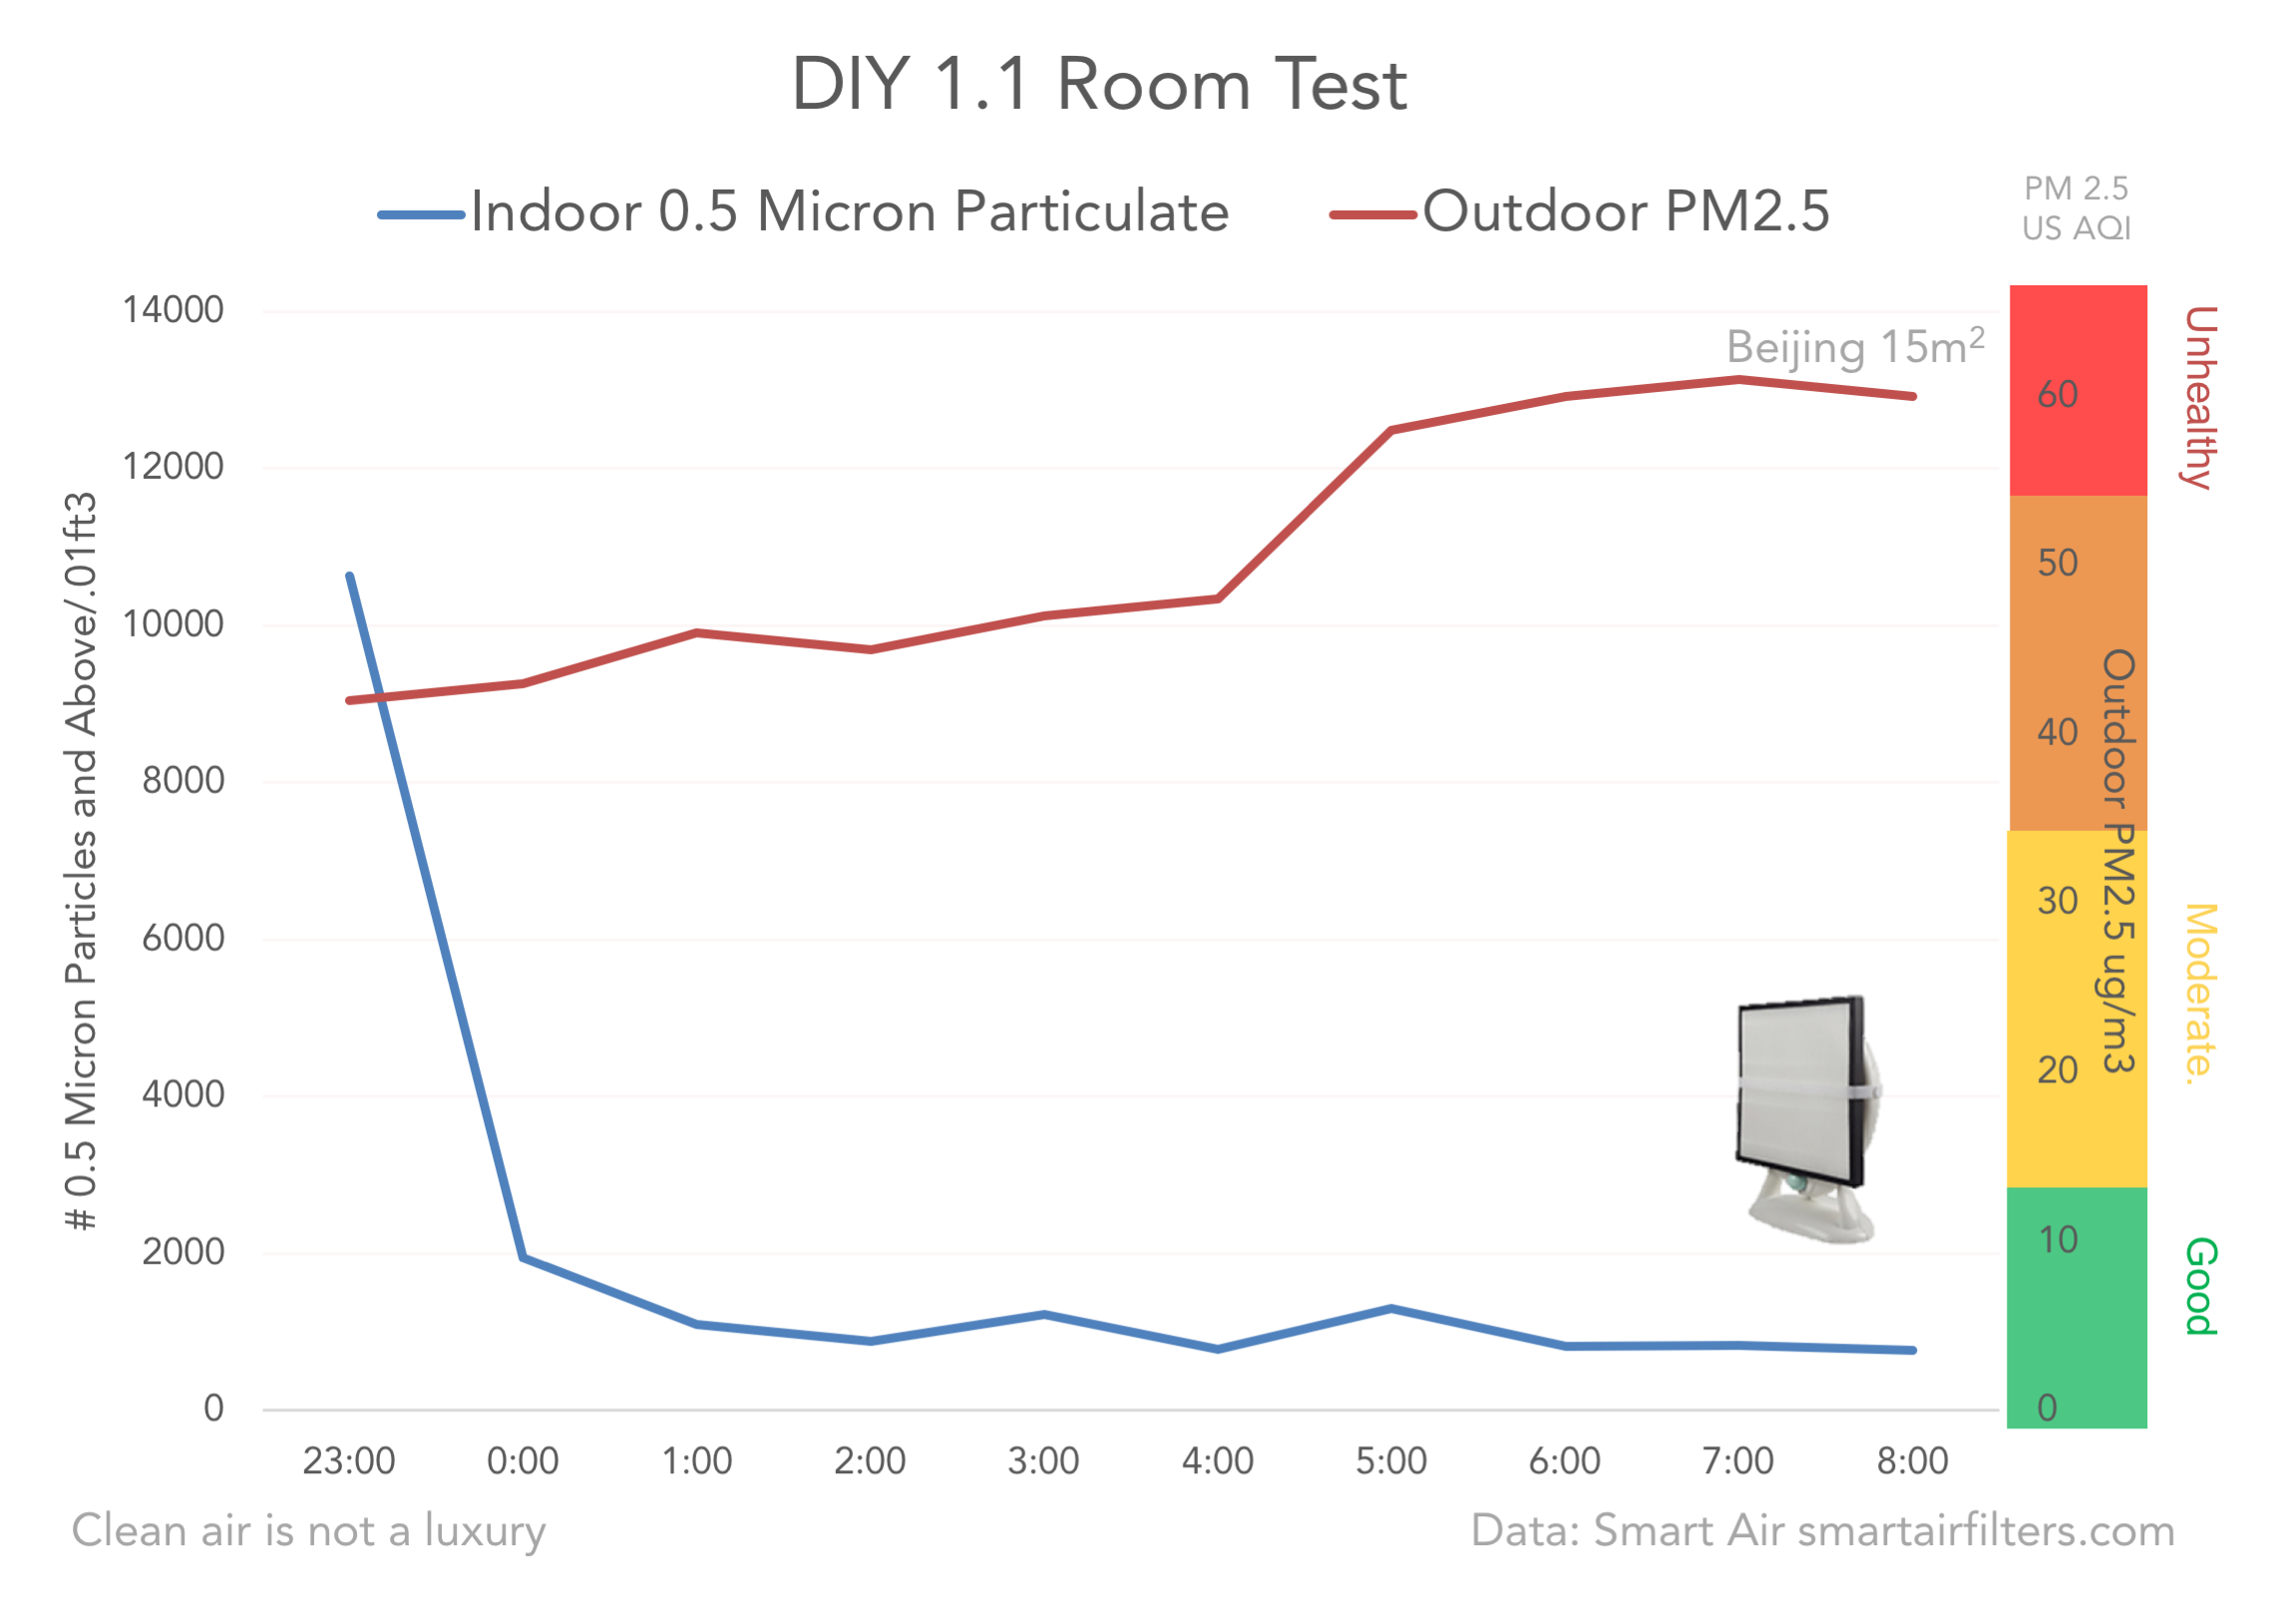 DIY purifier PM2.5 test data